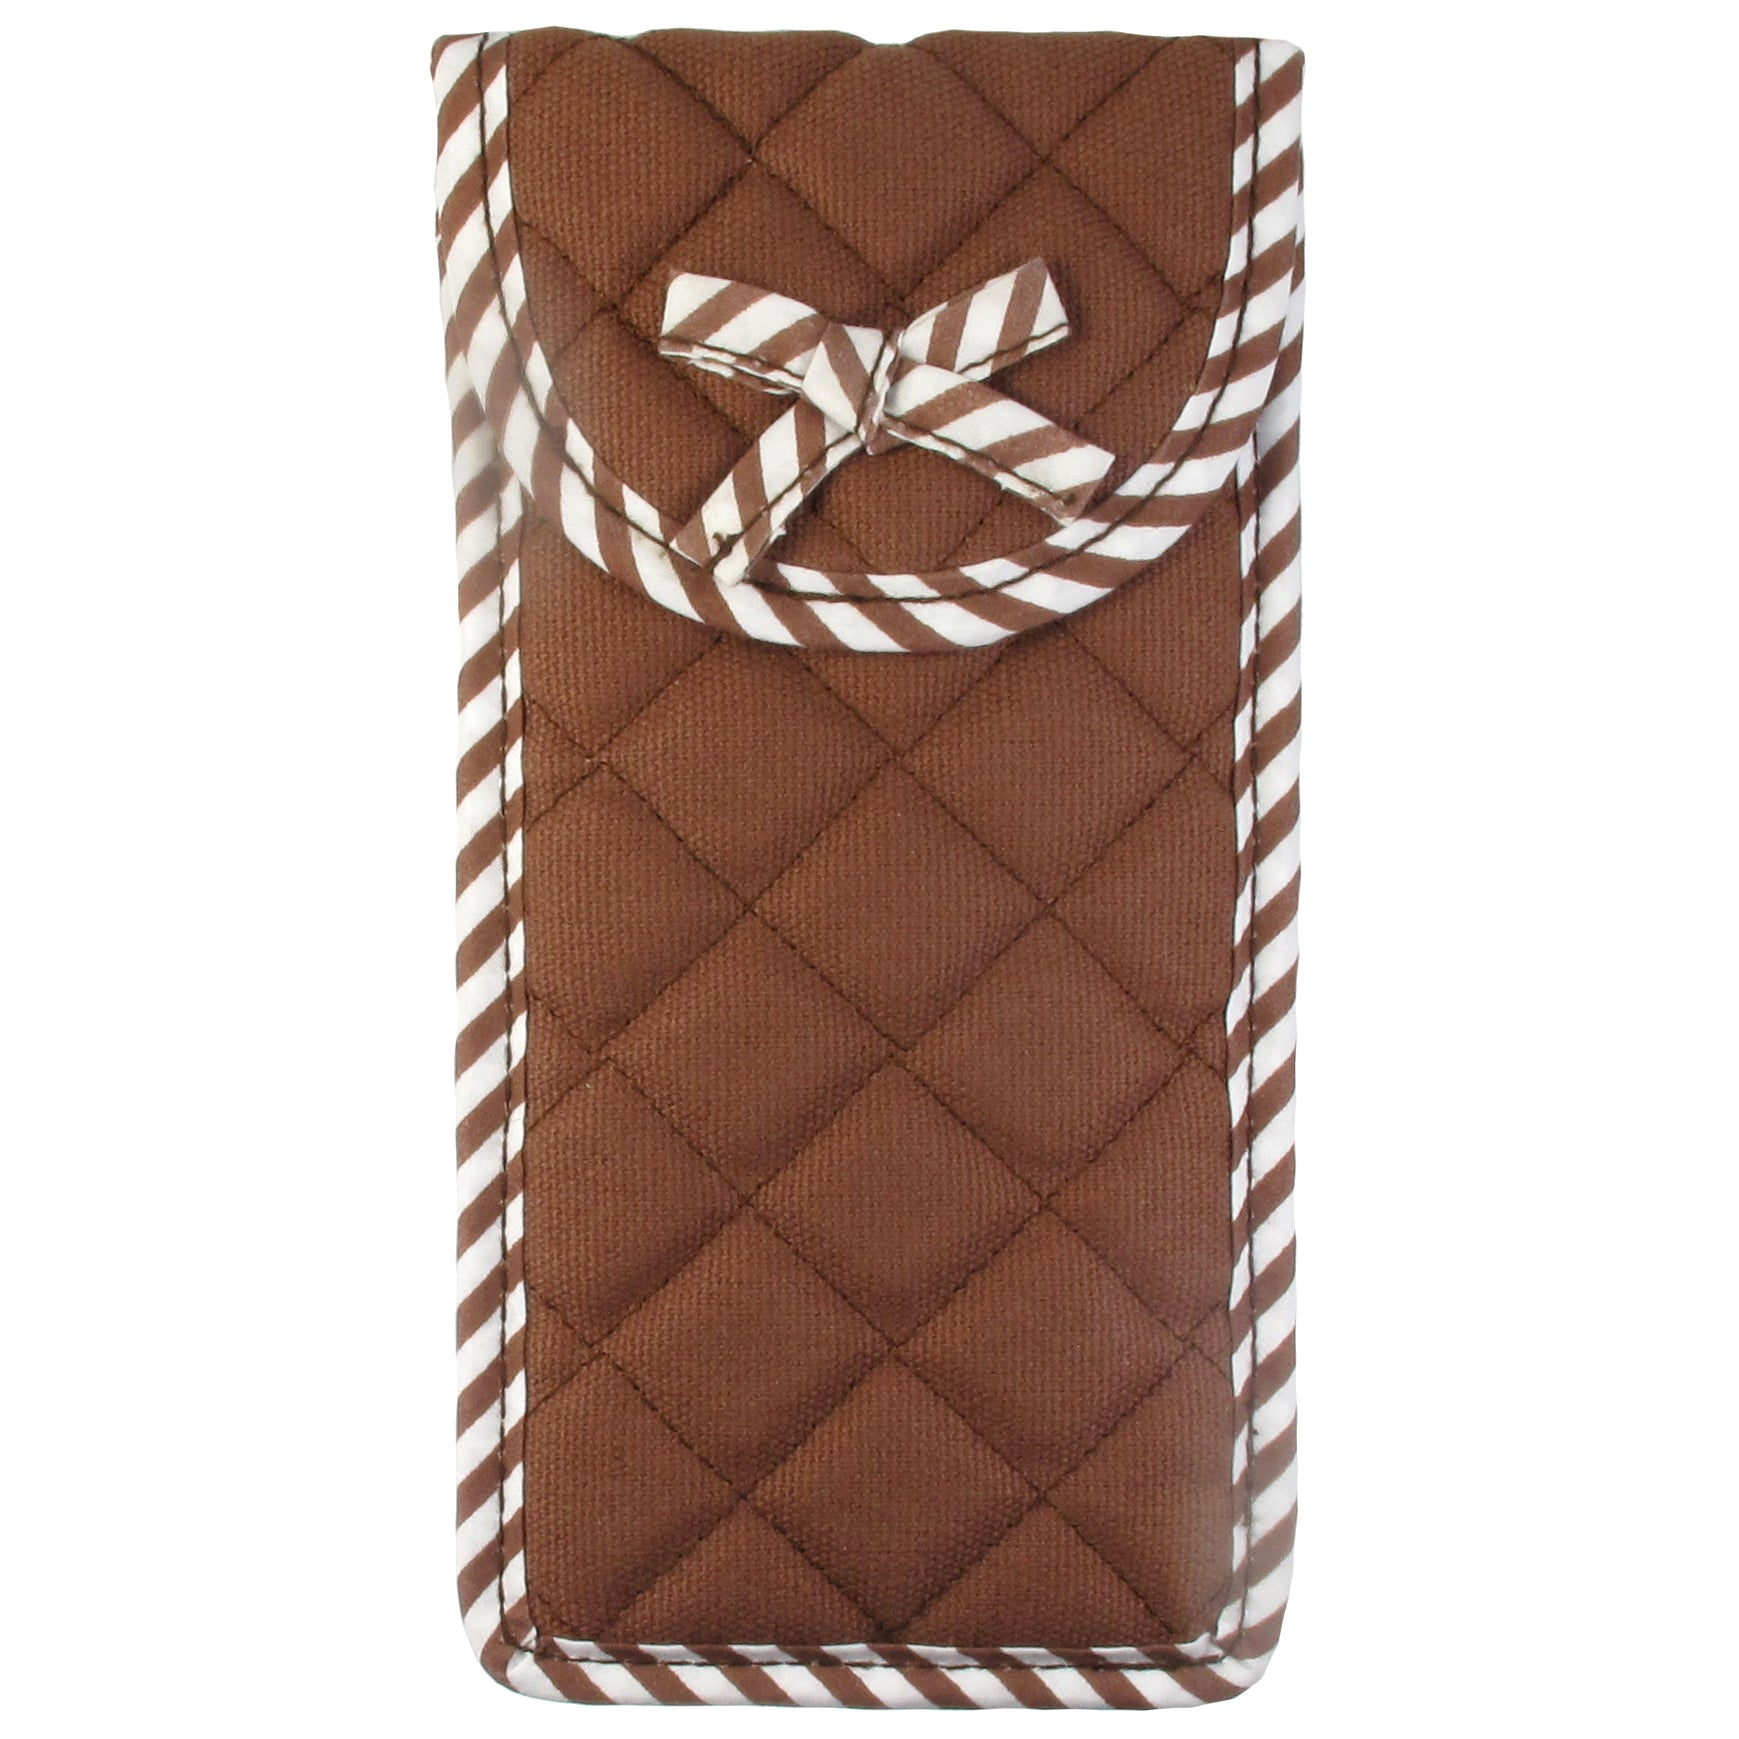 Soft Eyeglass Case (Pouch), Velcro Flap Closure, Quilted Canvas Fabric, Brown